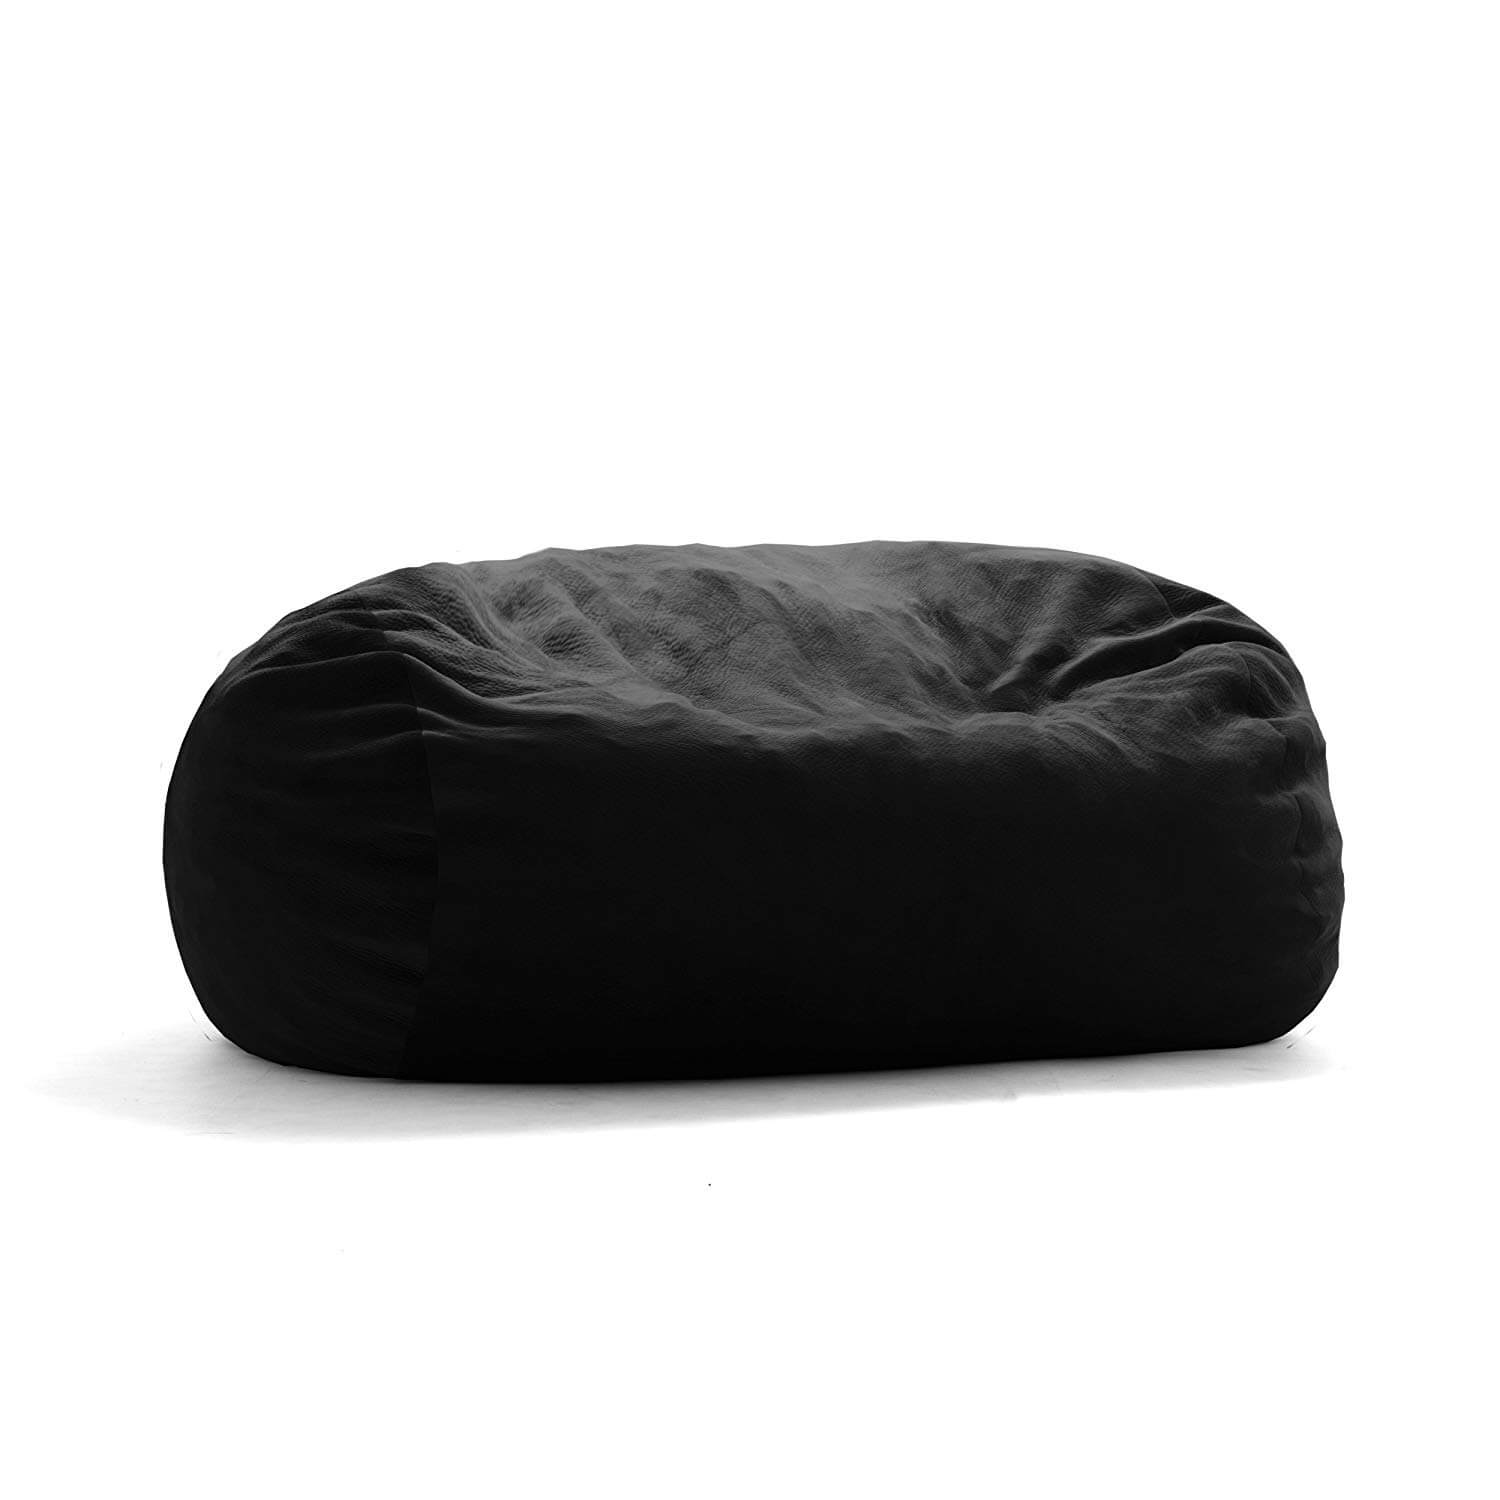 Admirable Big Joe Bean Bag Xxl Fuf Chair Review Short Links Chair Design For Home Short Linksinfo